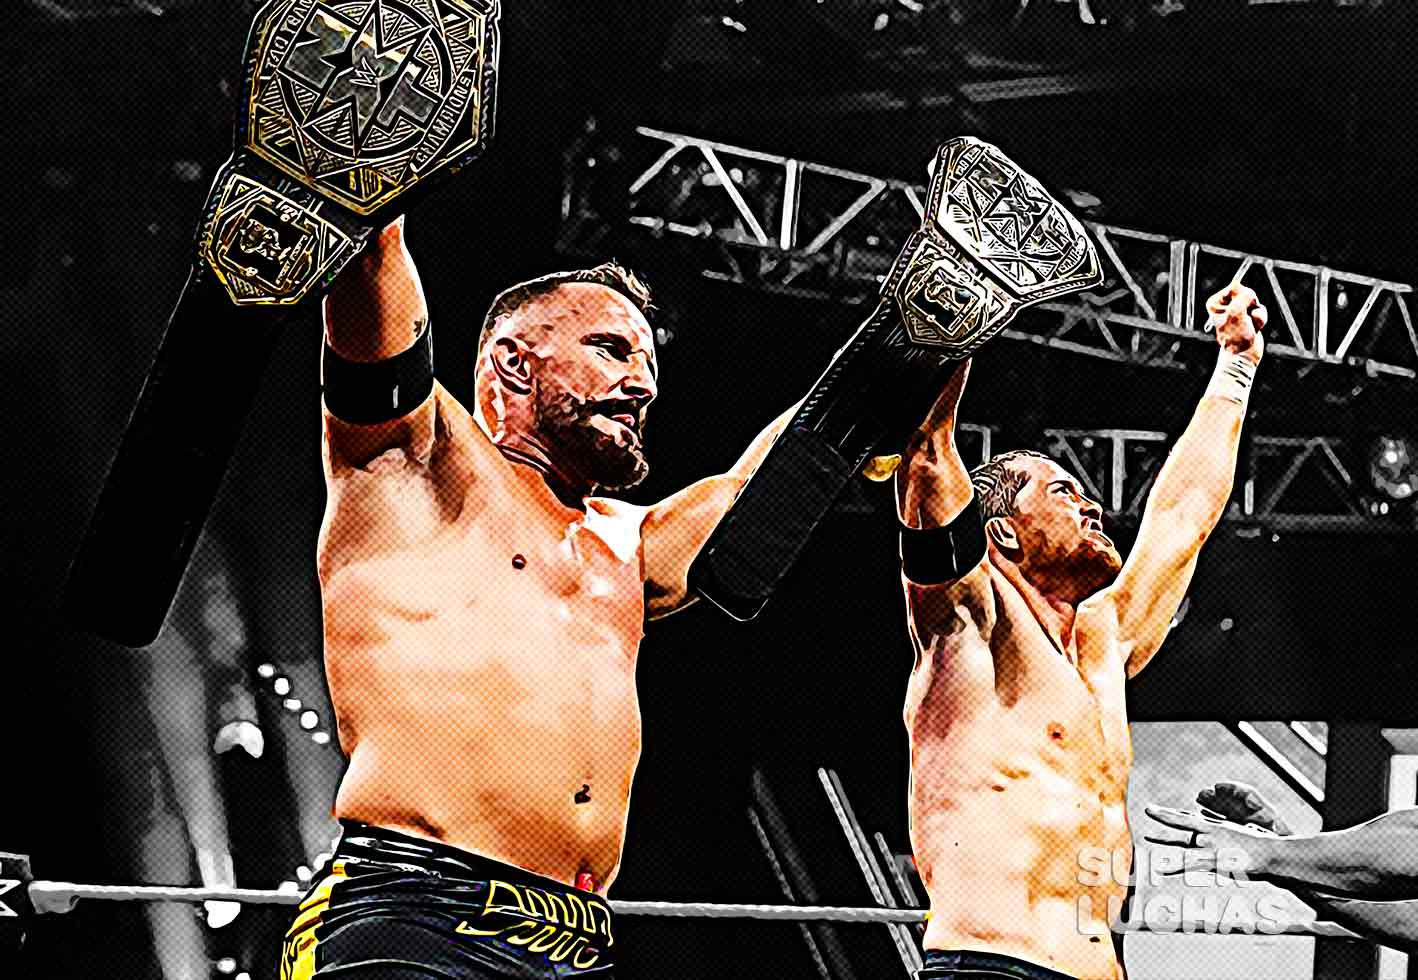 The Undisputed Era / NXT